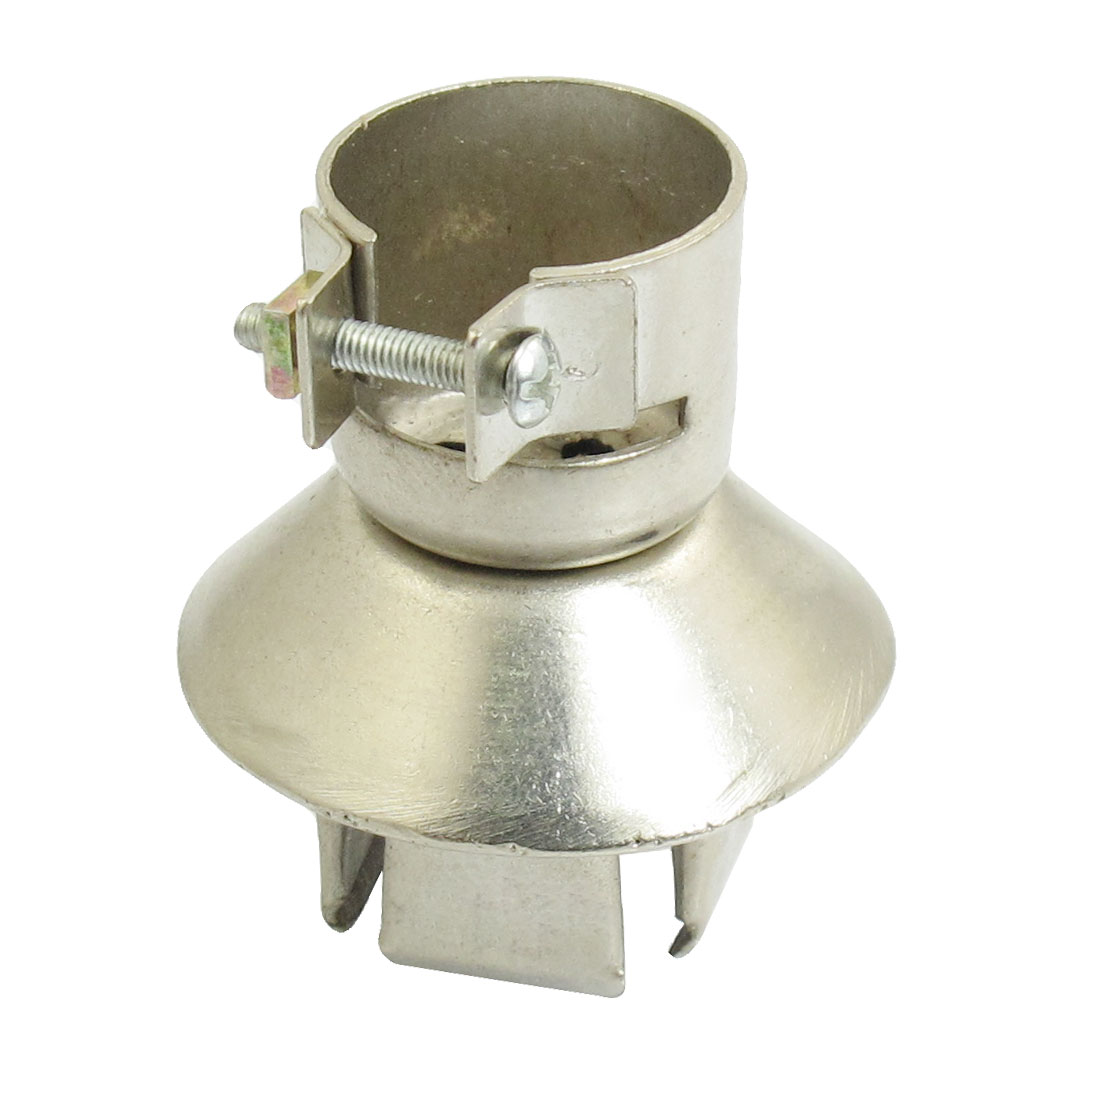 Silver Tone 1135 QFP Nozzle 14mm x 14mm for Hot Air Soldering Station